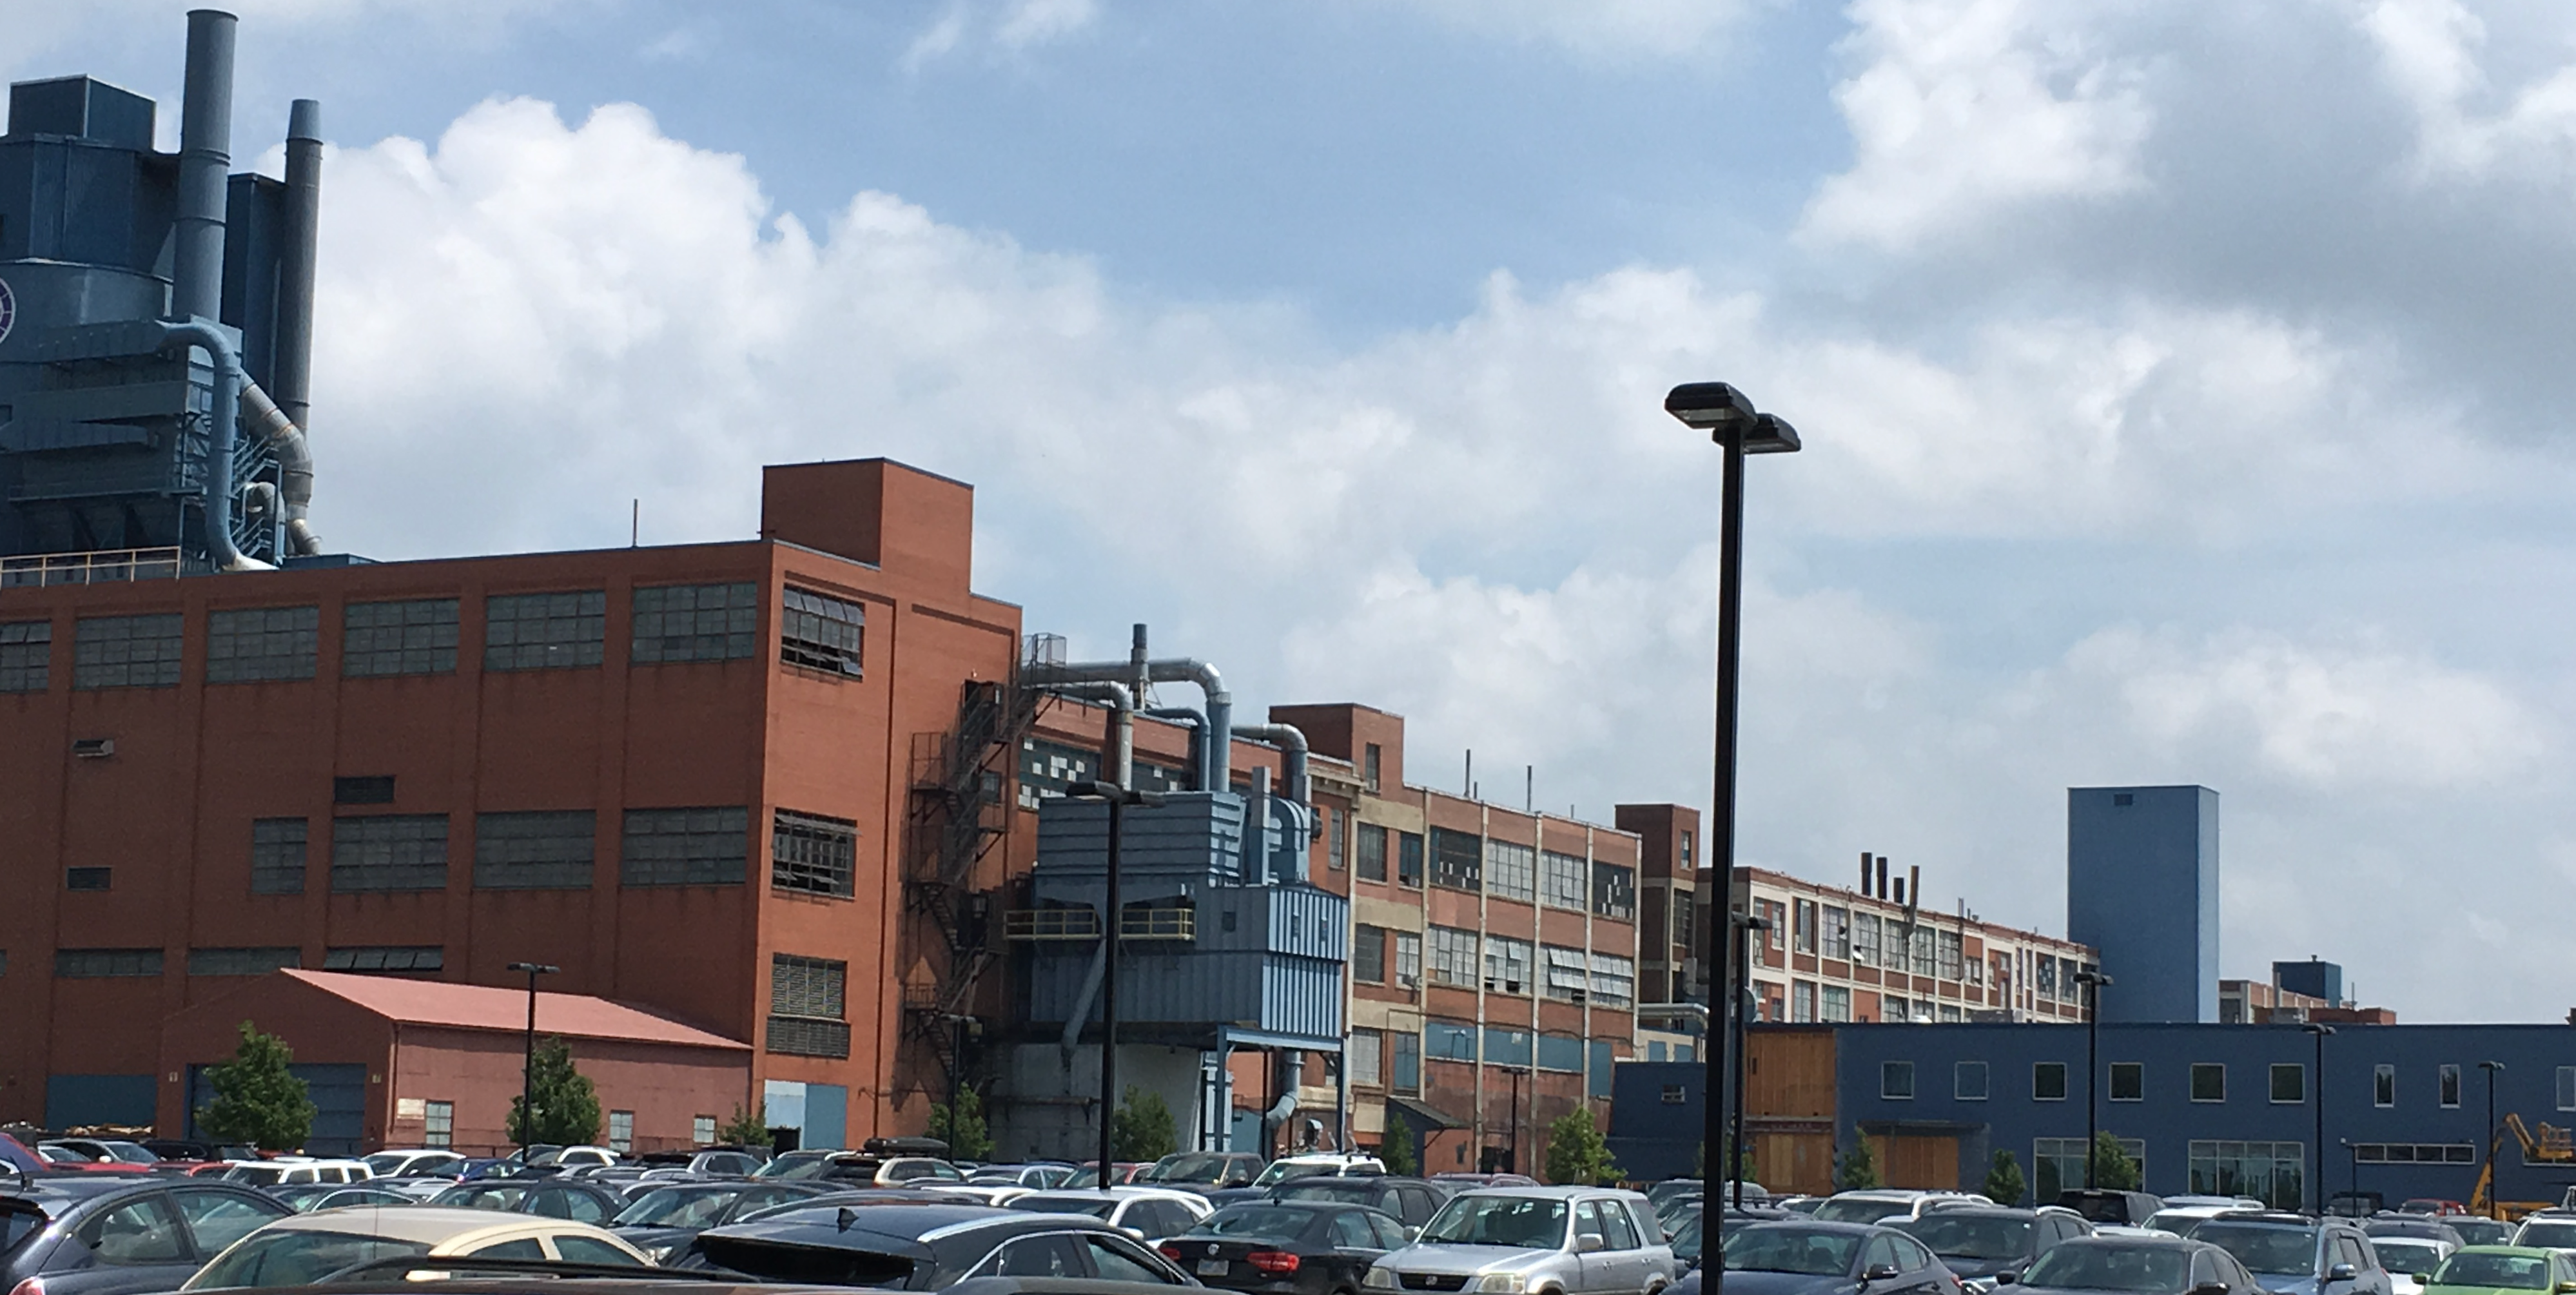 Photo from 2020 of Uniroyal on Strange St. in Kitchener, Ontario